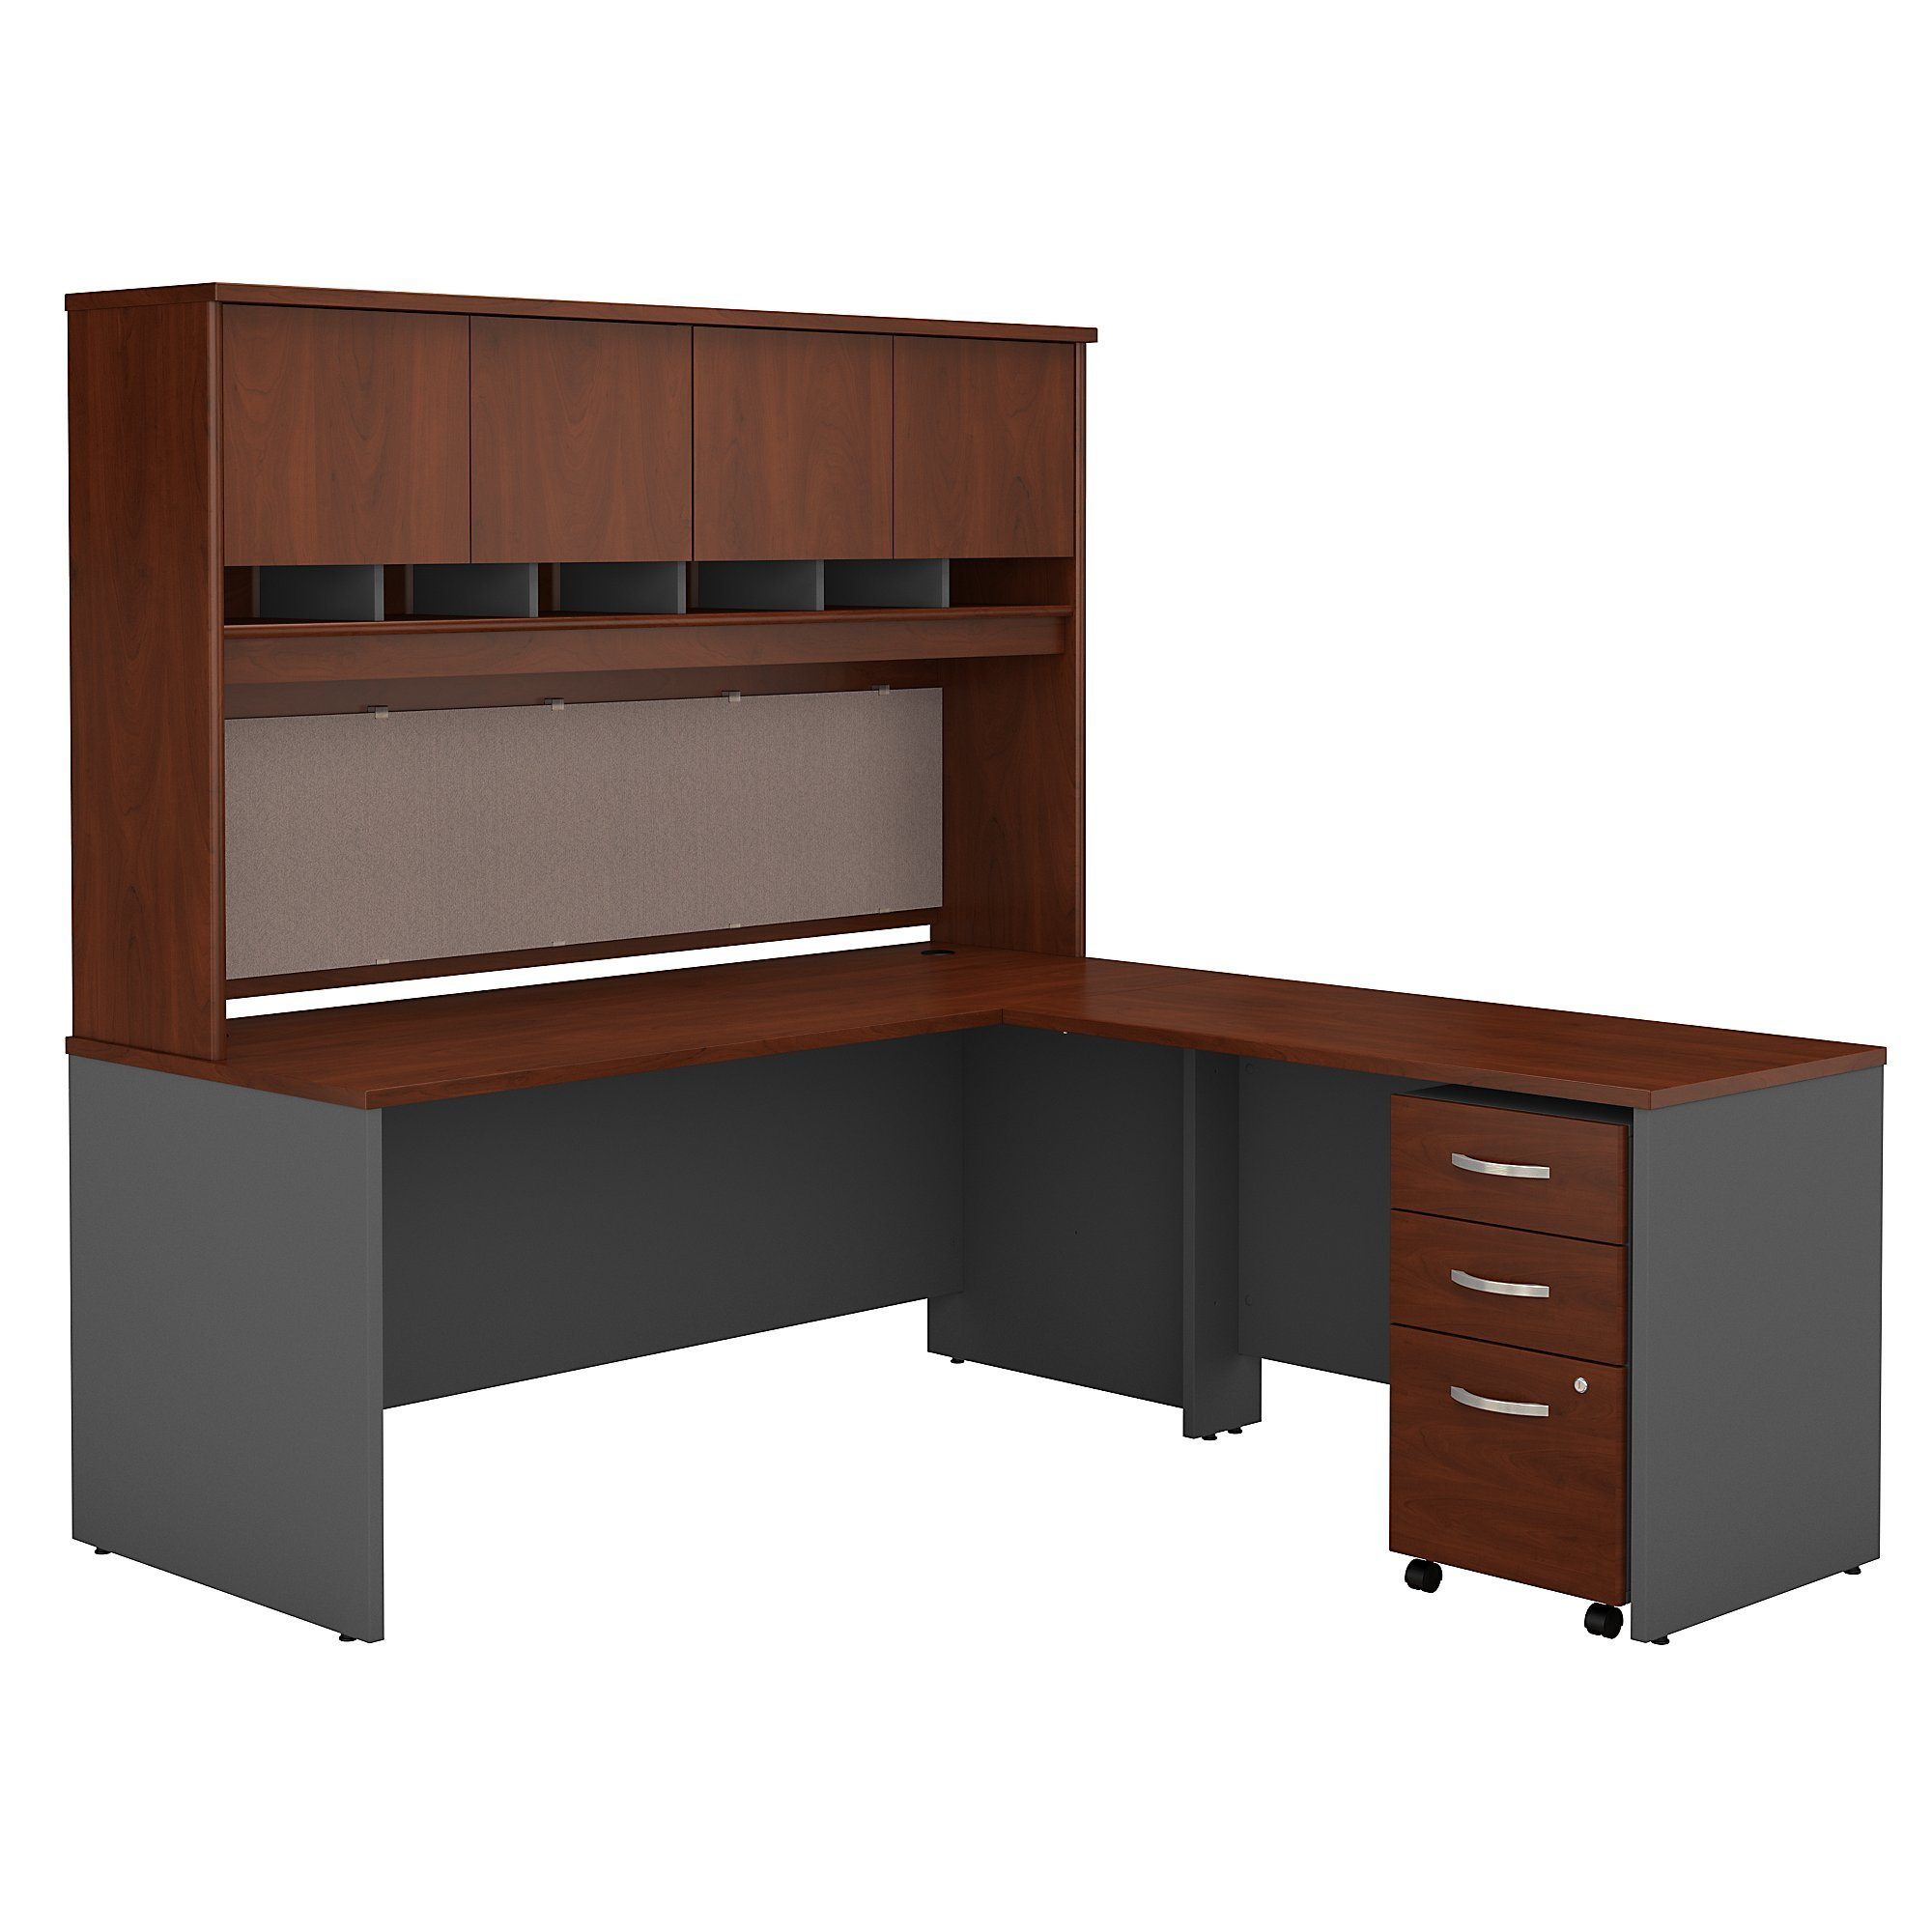 Bush Business Furniture Series C 72W L Shaped Desk with Hutch and Mobile File Cabinet in Hansen Cherry by Bush Business Furniture